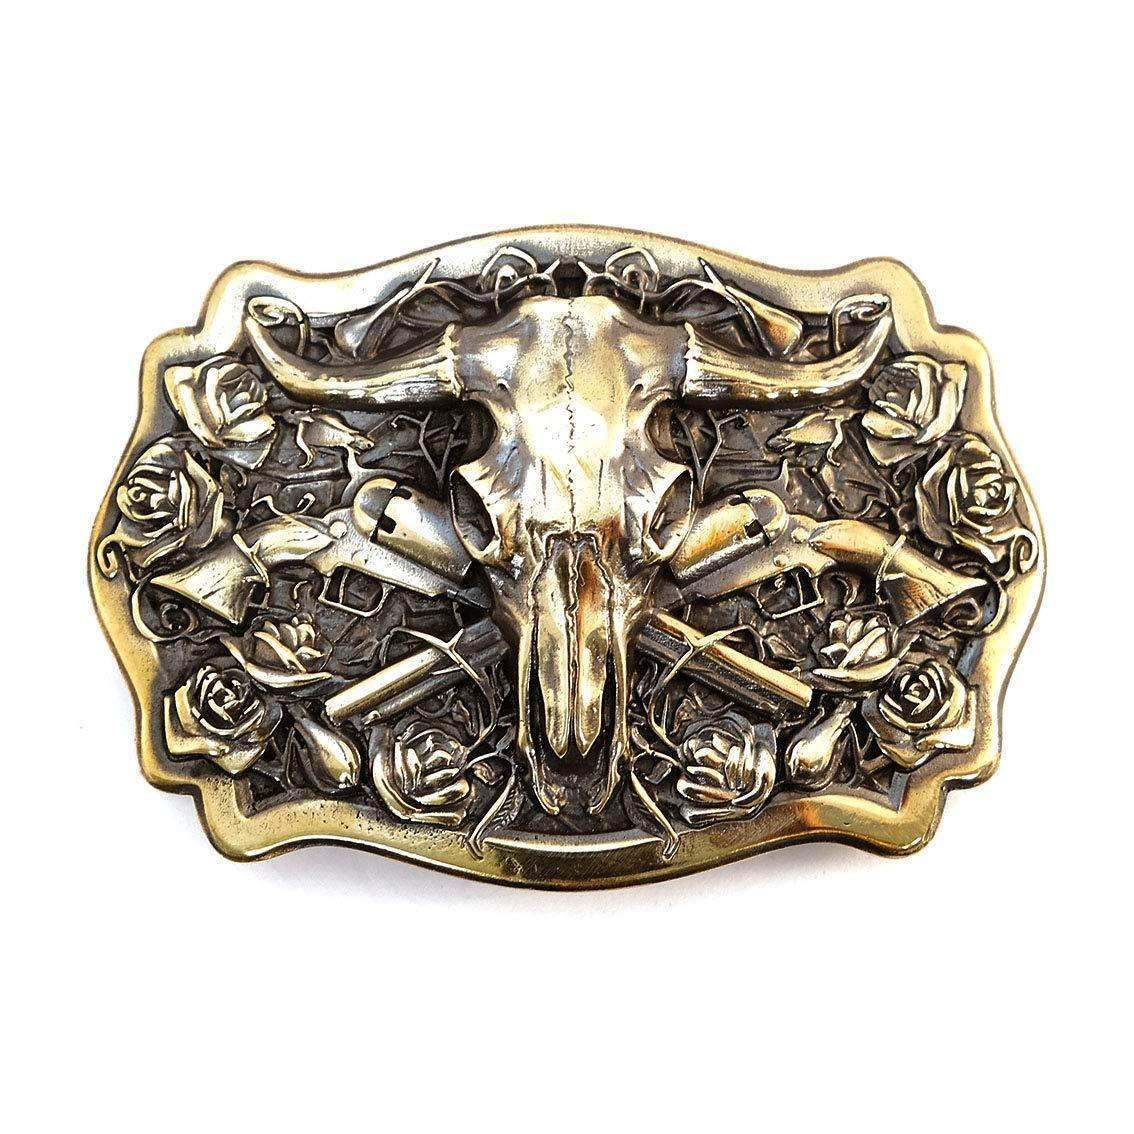 American Bison Buffalo Skull, Longhorn Cattle Buffalo Bison Skull Tribal Native American Cowboy Western men solid brass trophy belt buckle